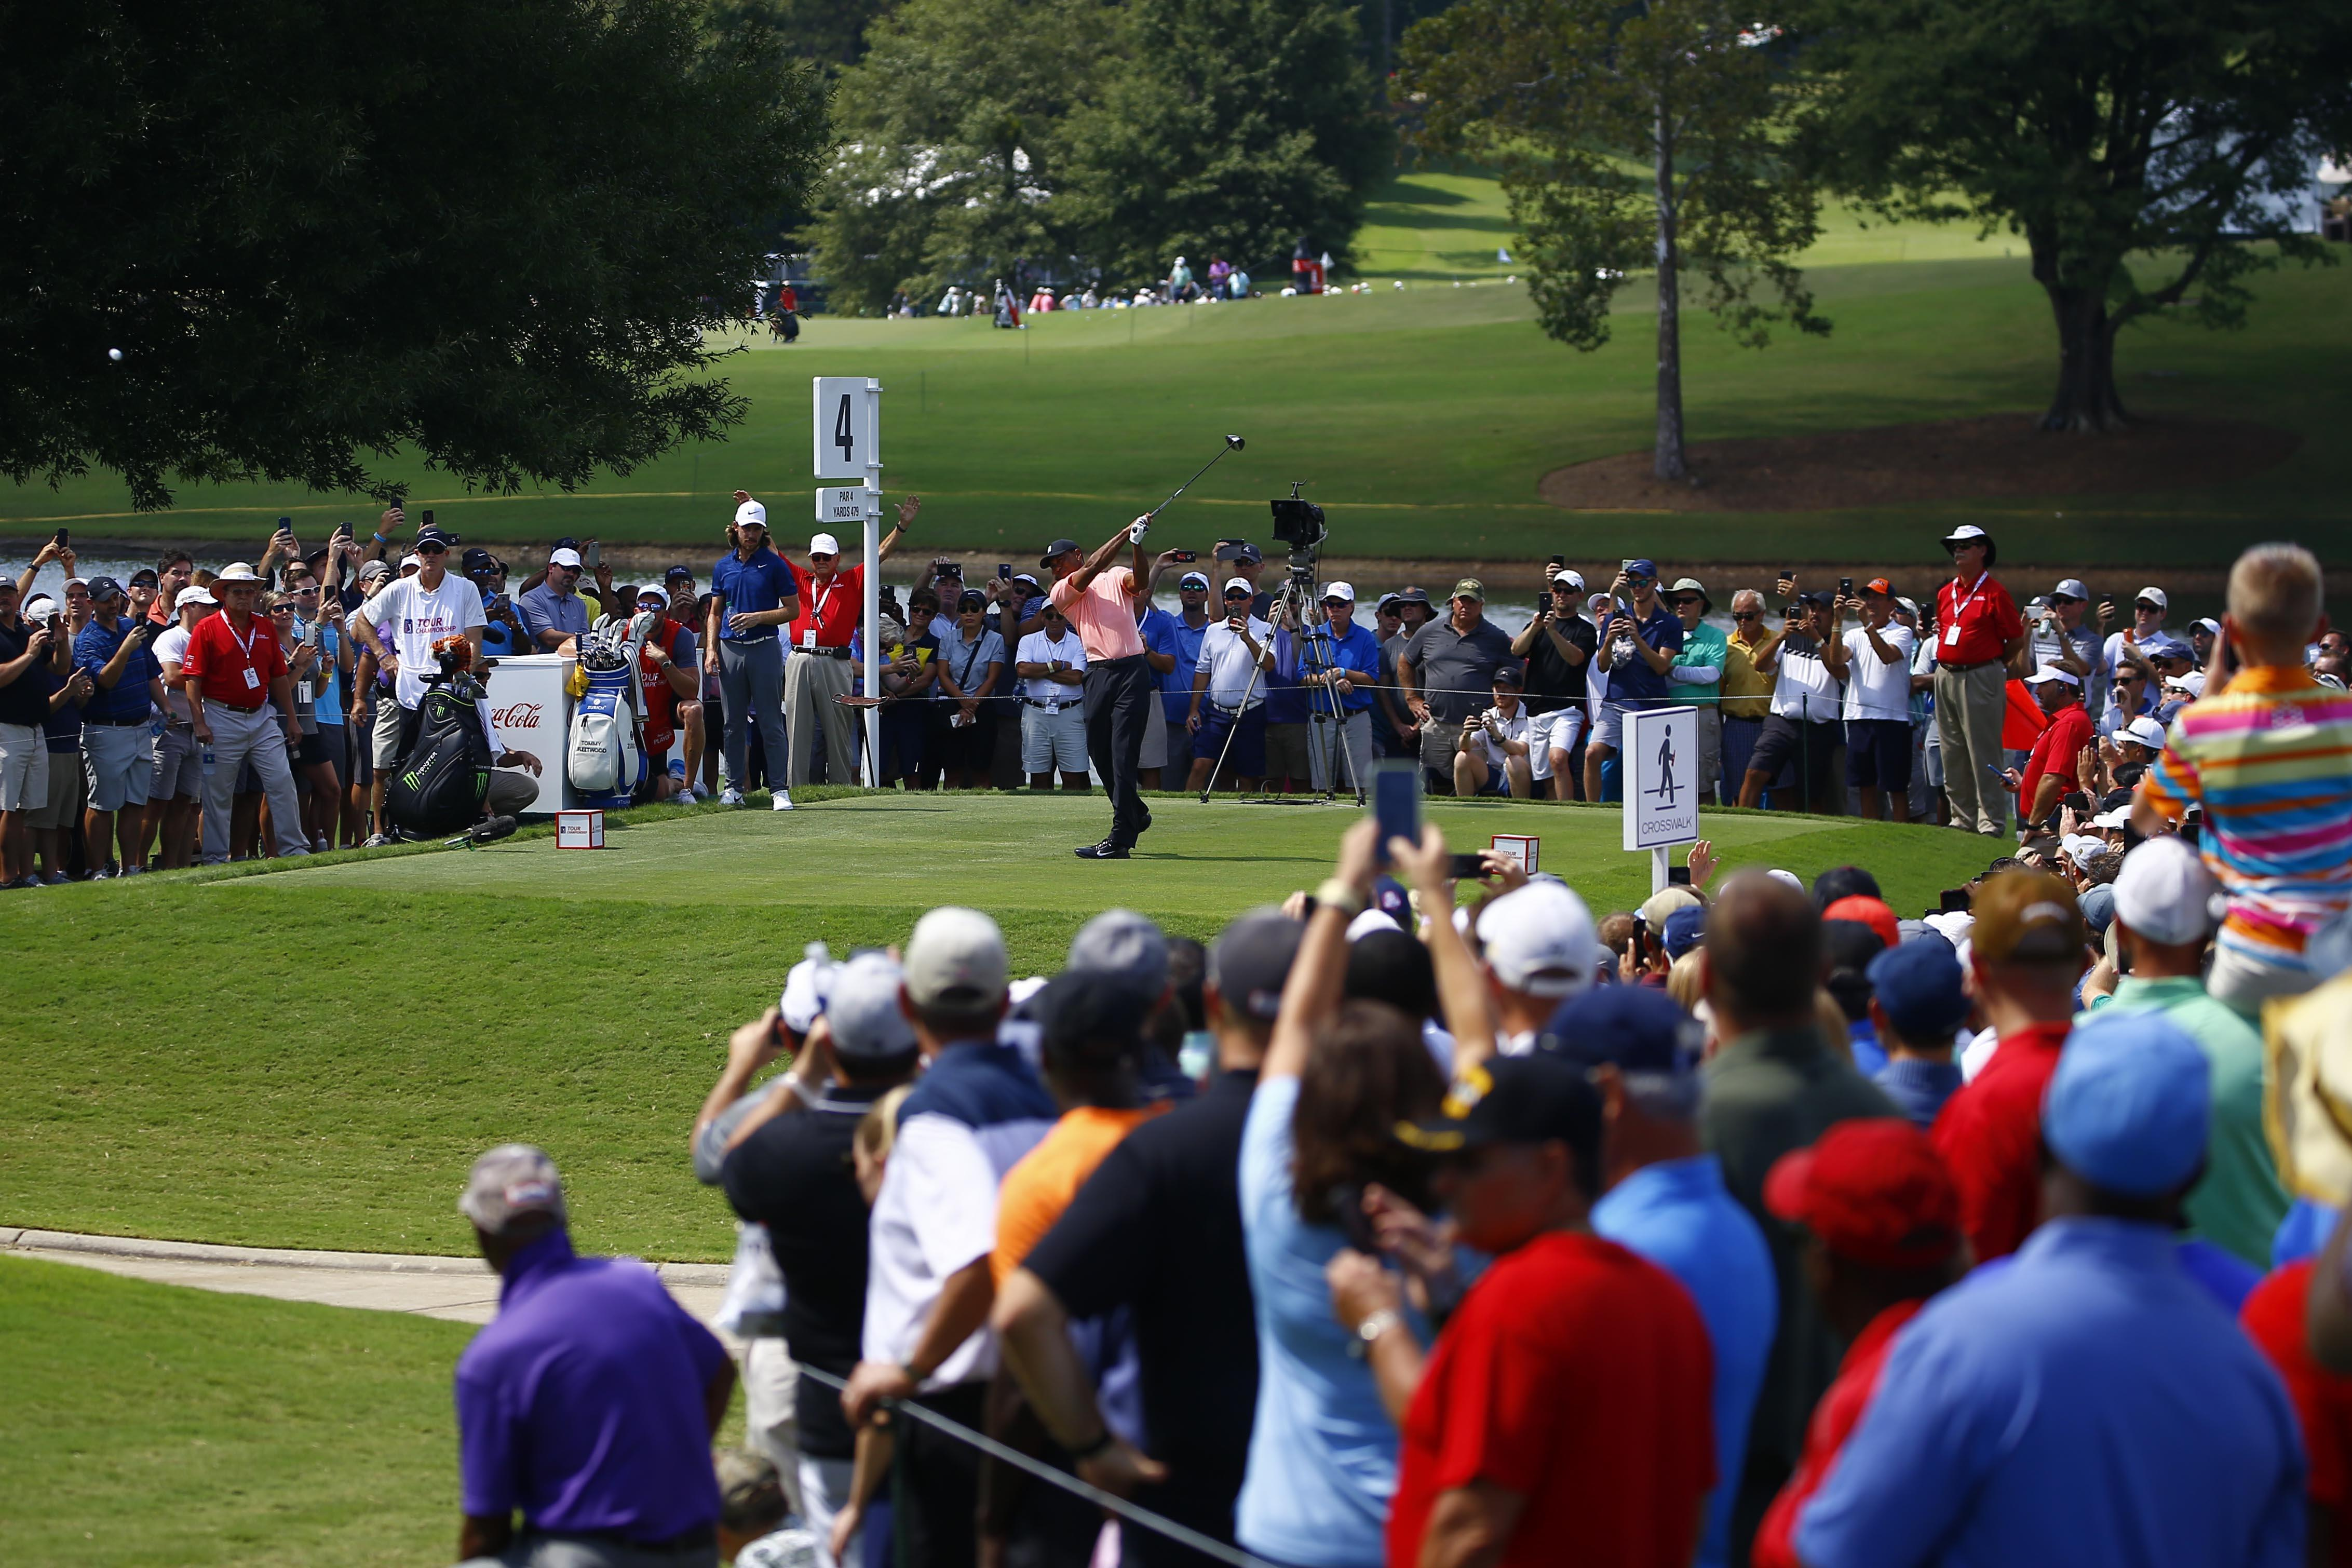 Tiger Woods drew a large crowd on Thursday as he always does